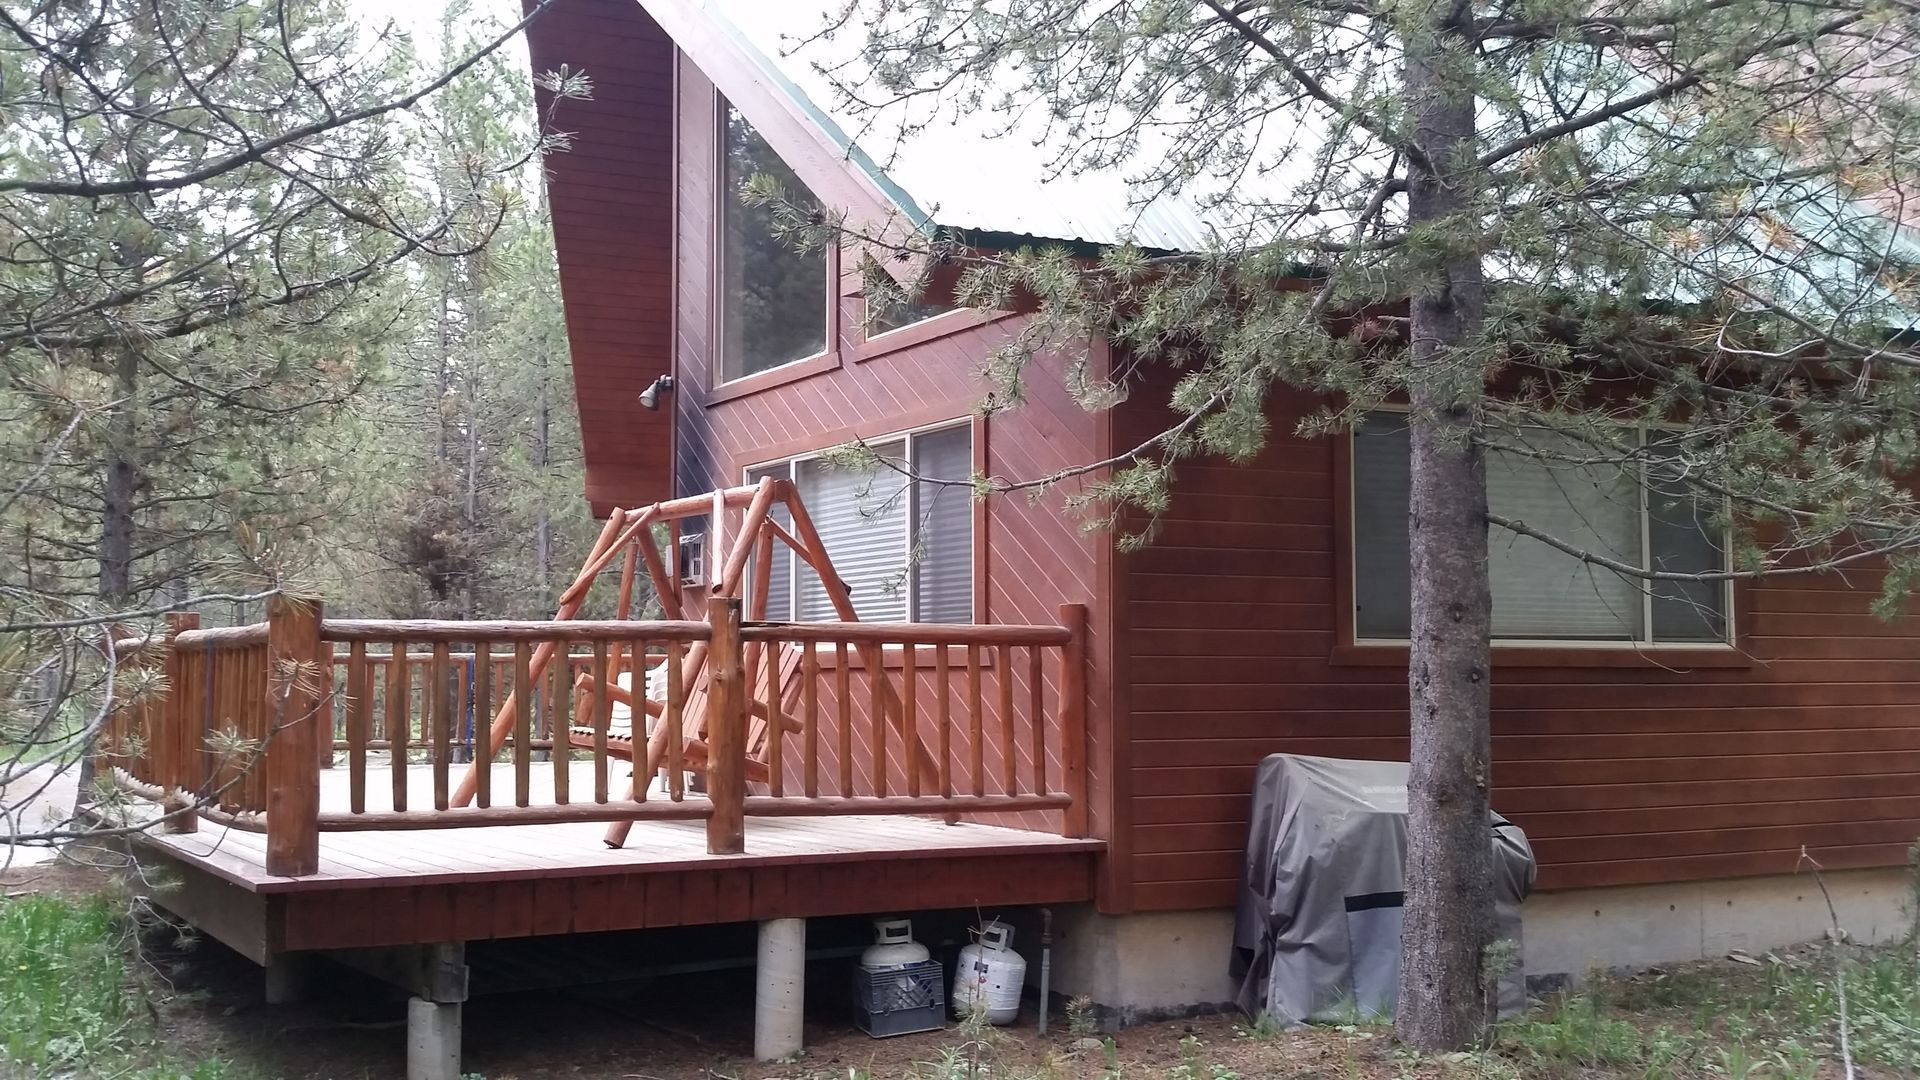 beautiful rentals a up early r in comments to idaho island cabin woke park cabins sunrise earthporn